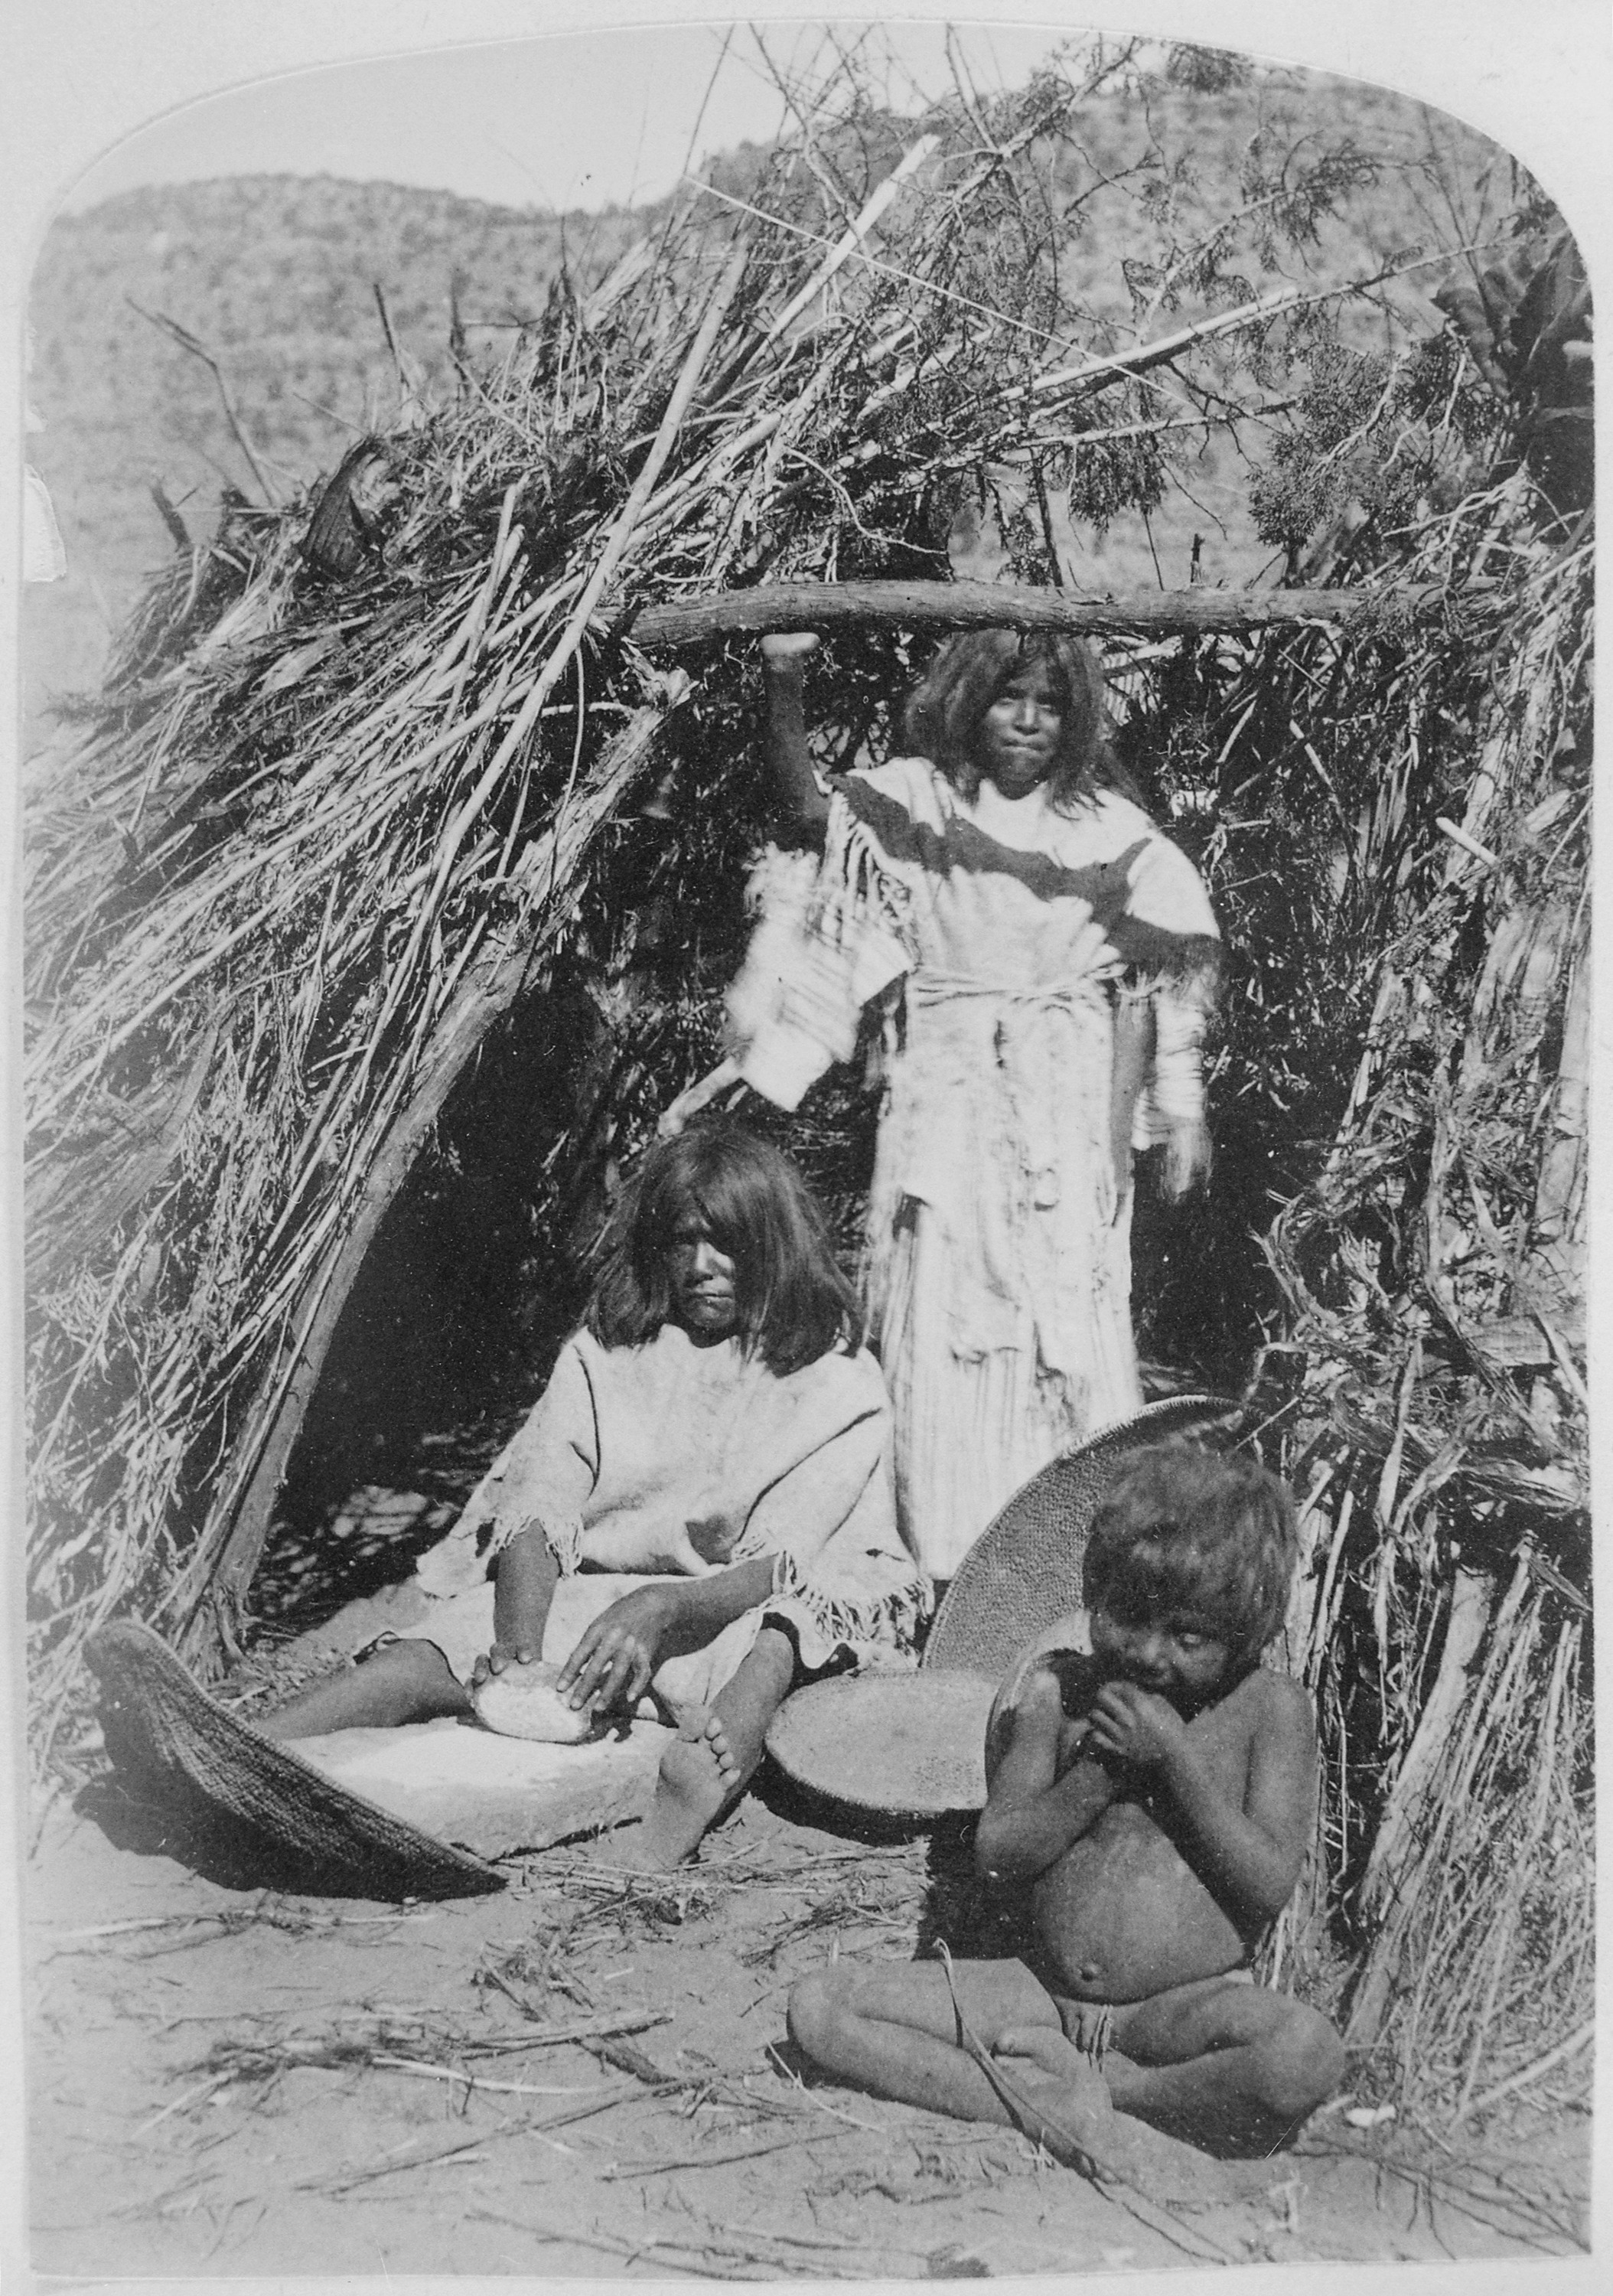 File Paiute Woman Grinding Seeds In Doorway Of Thatched